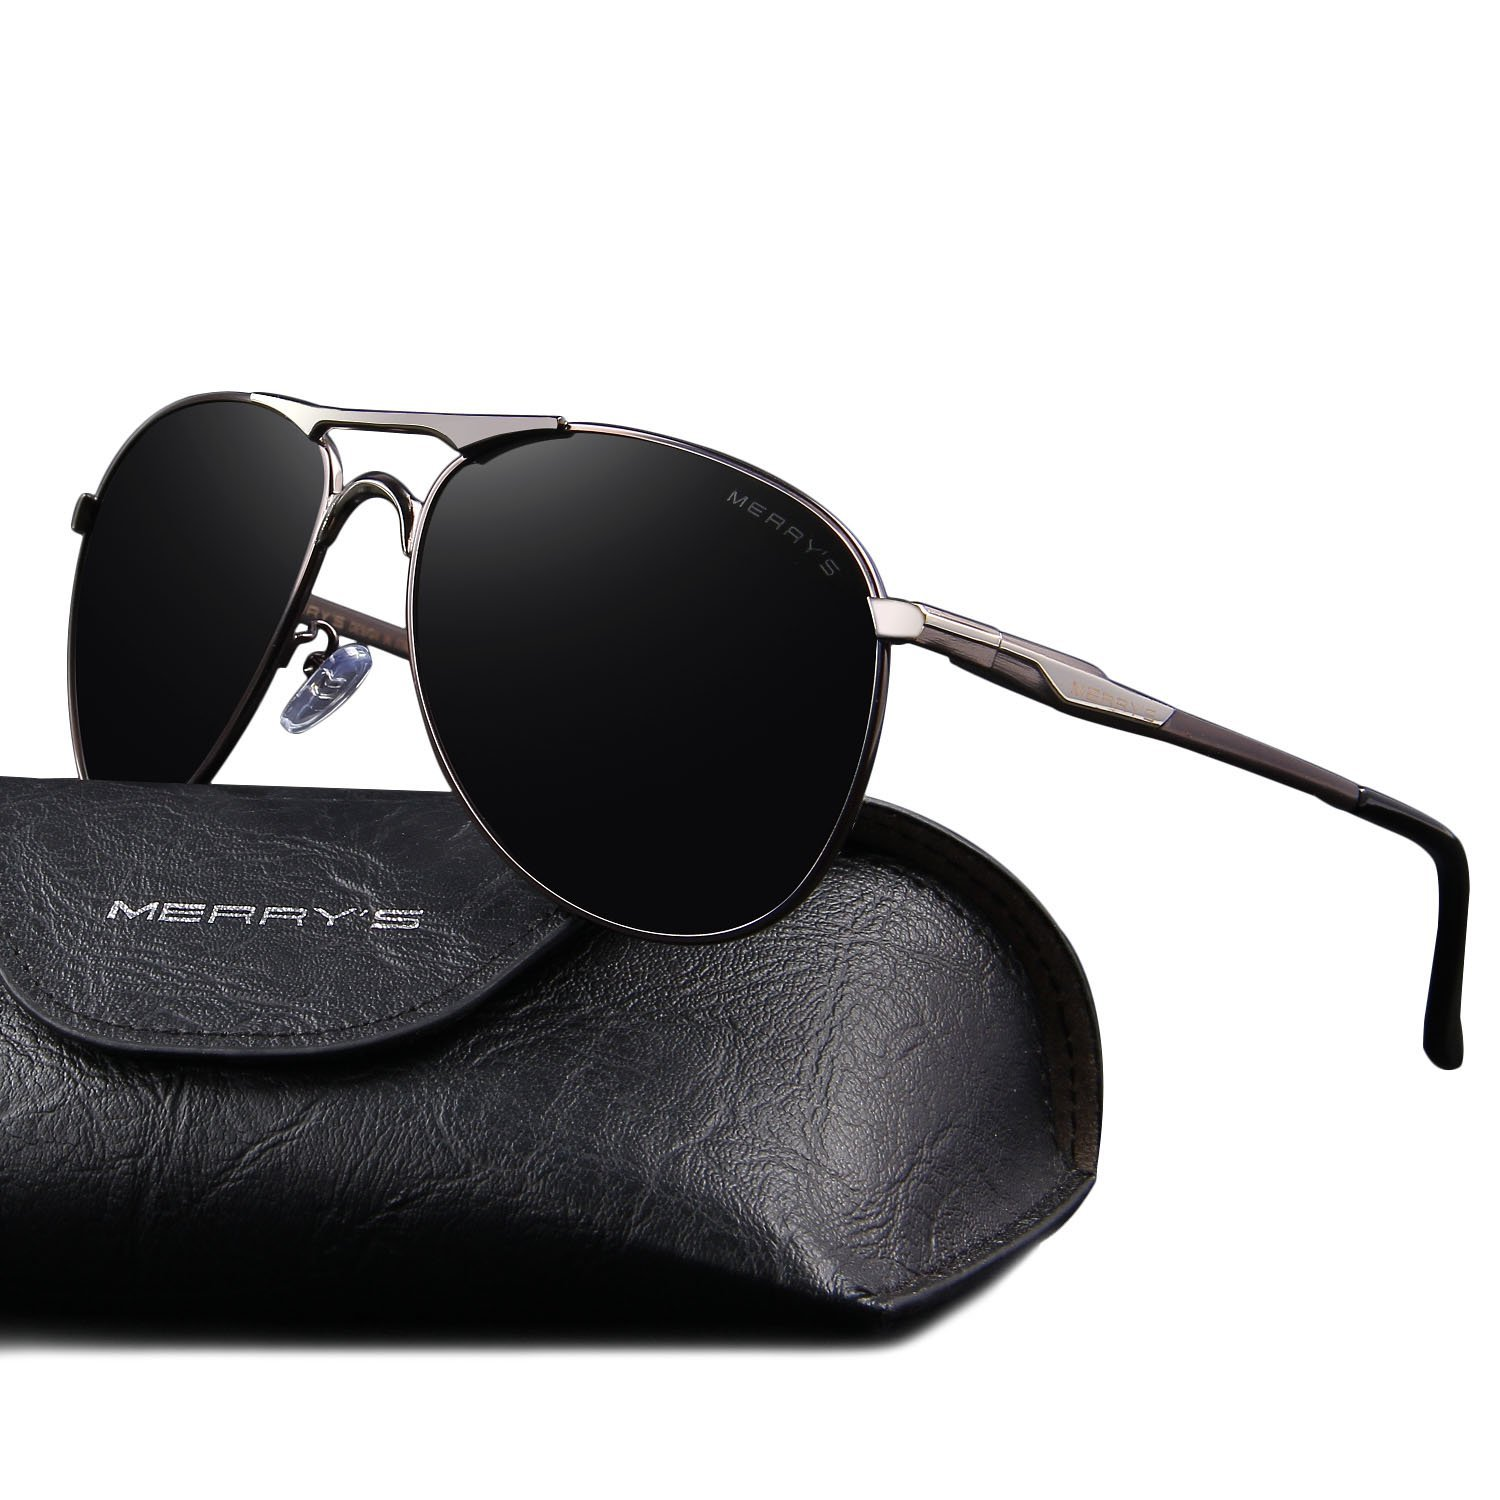 MERRY'S Mens Driving Polarized Sunglasses Coating Lens Driving Shades Classic Brand Sun glasses S8712 (Silver&Gray, 62)